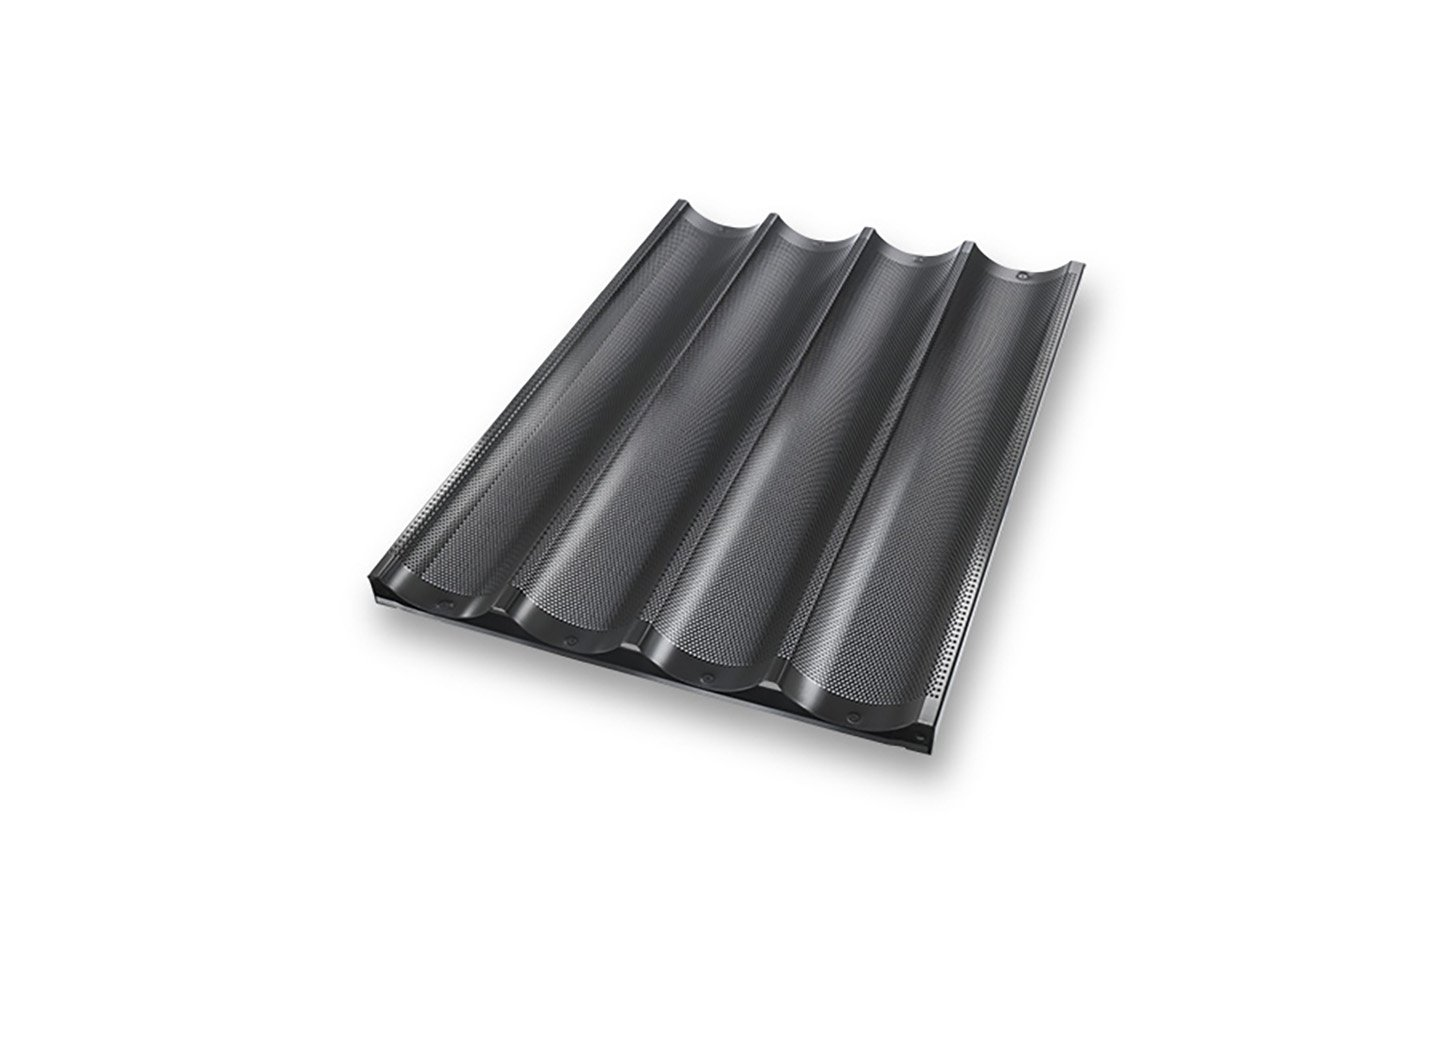 4 Channel Baguette Tray - DuraShield® Coating